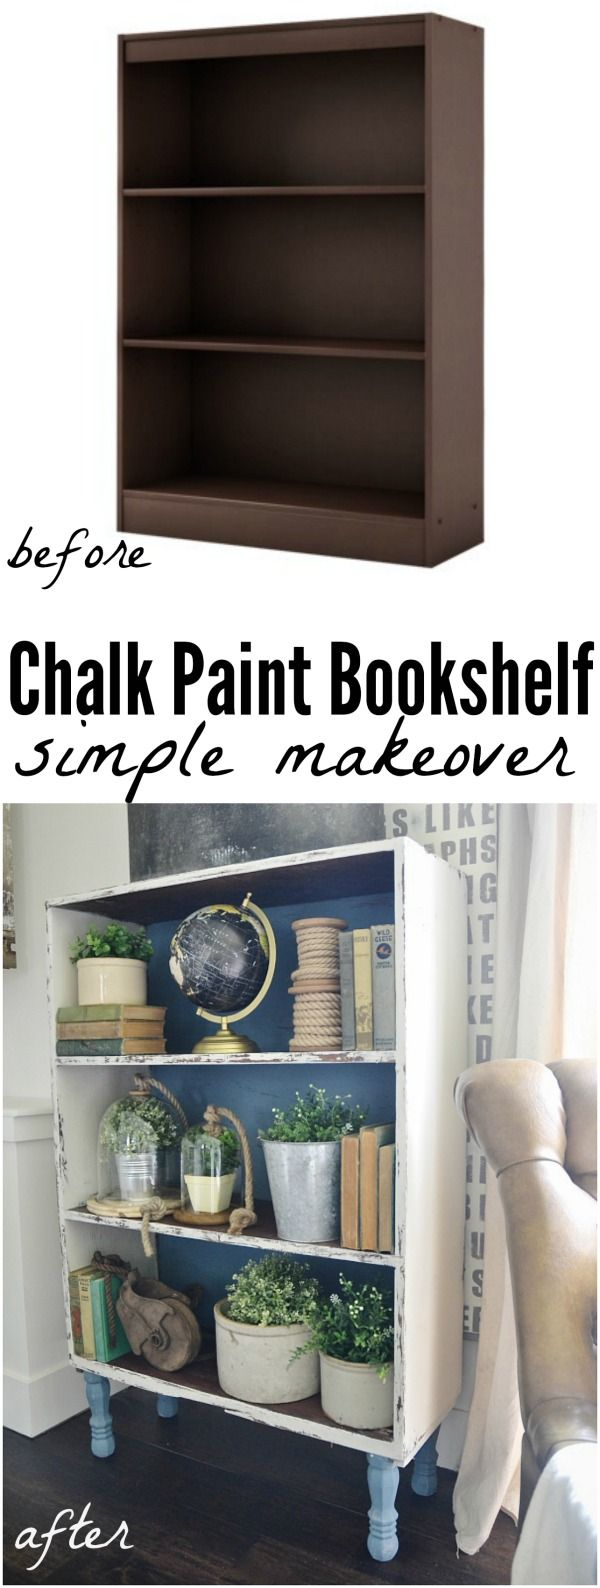 Chalk Paint Bookshelf Makeover